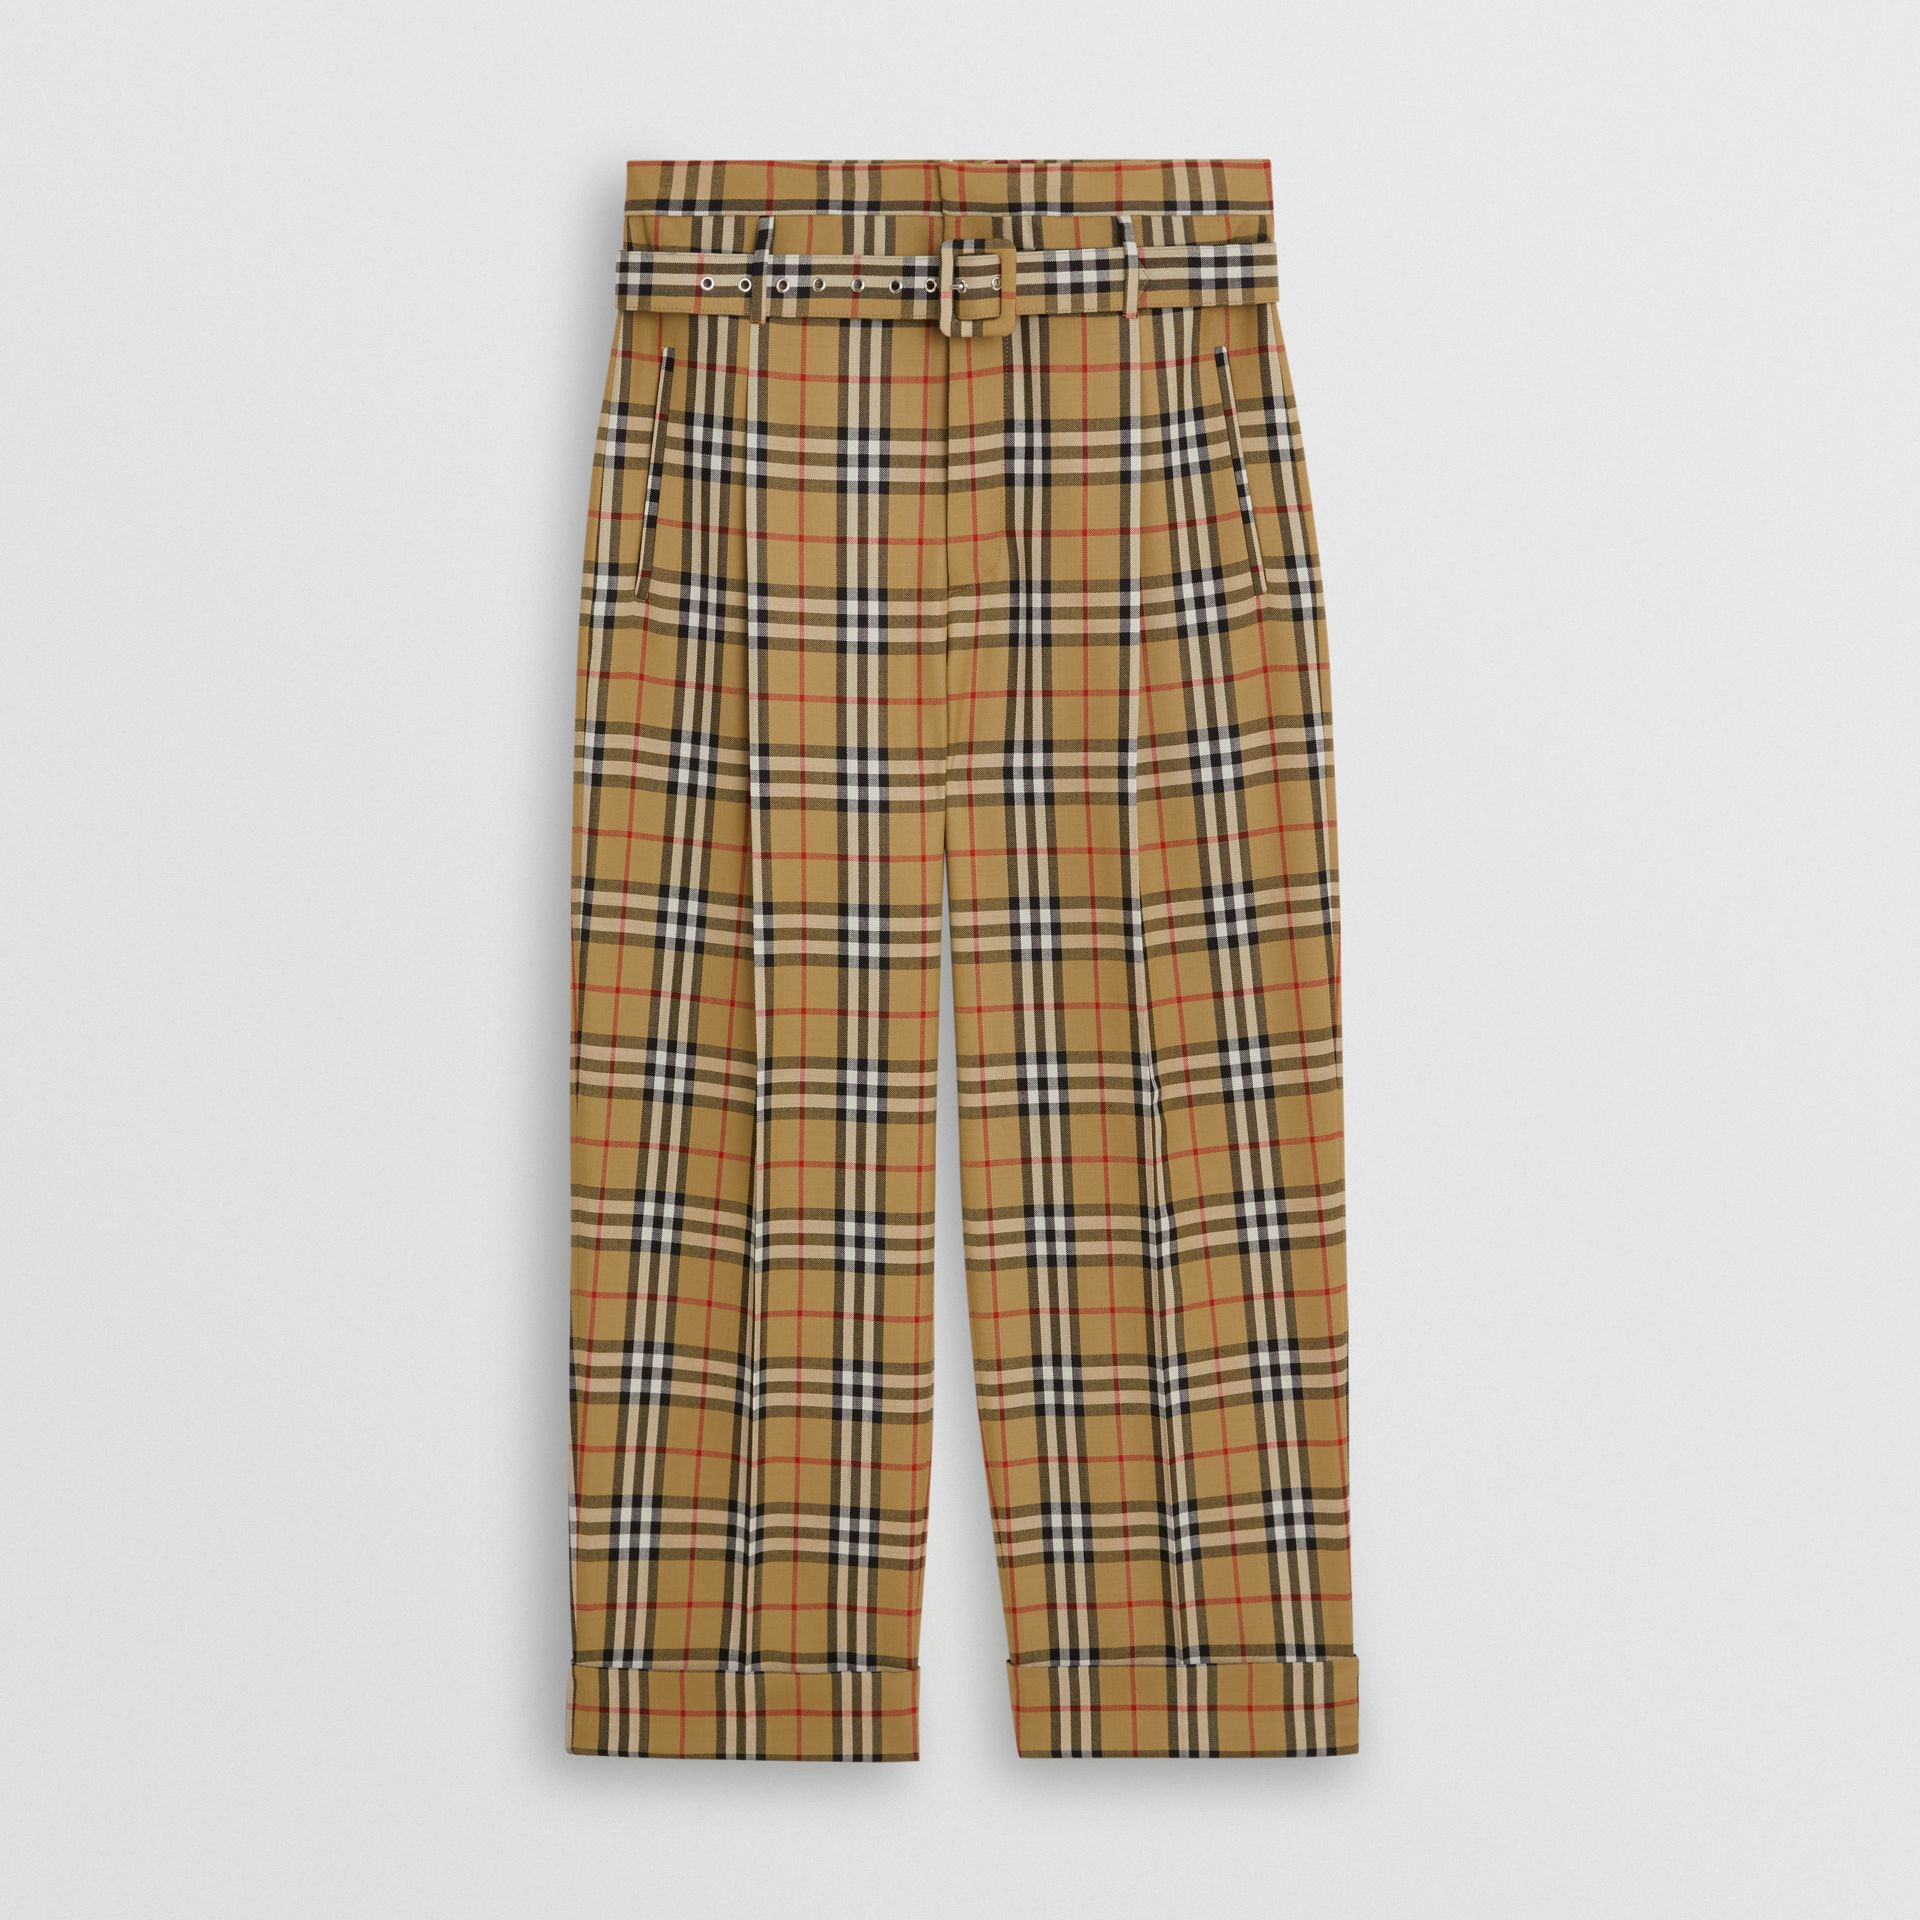 Pantalon taille haute en laine à motif Vintage check (Jaune Antique) | Burberry - photo de la galerie 3